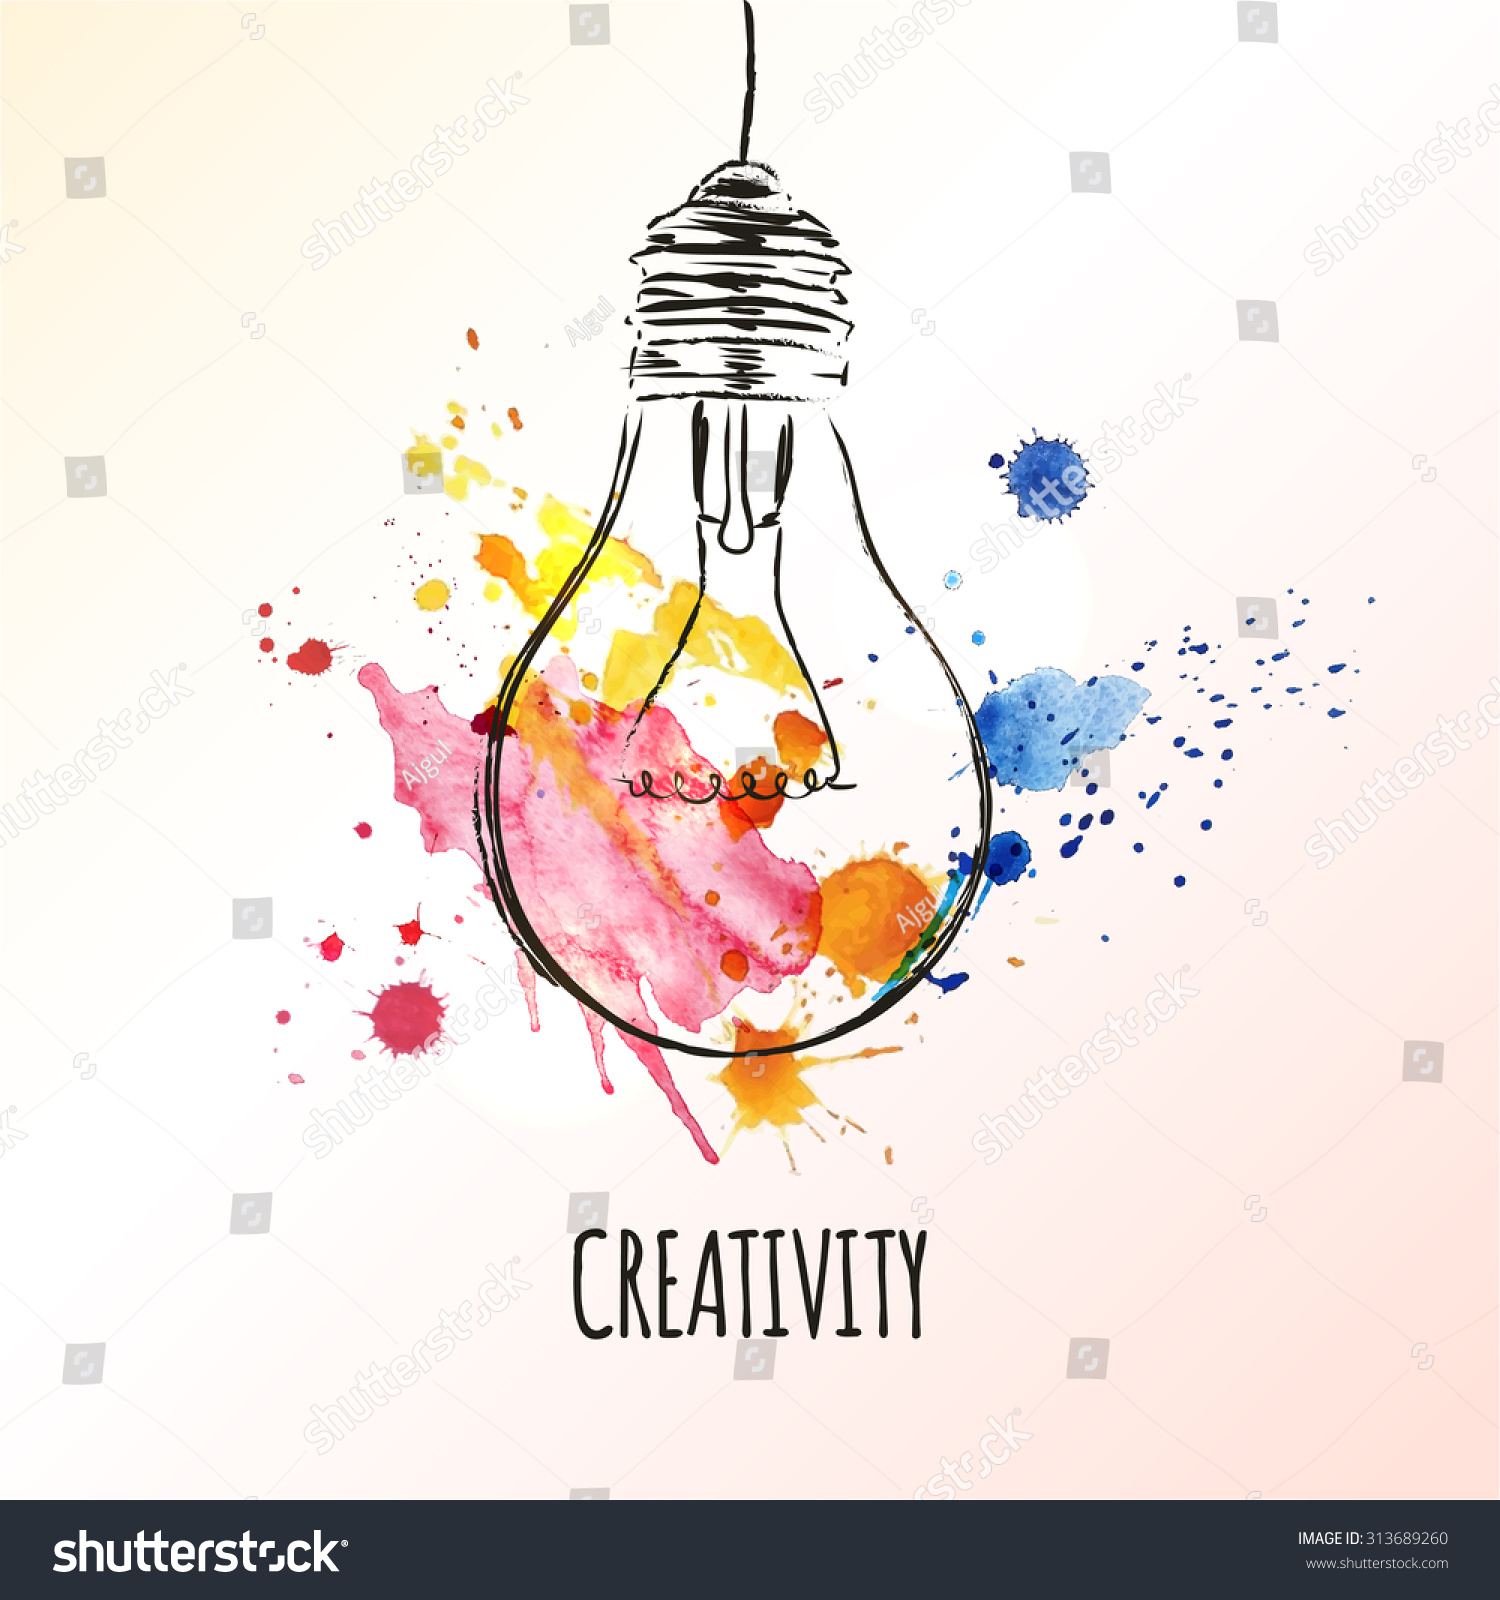 Creativity Concept Light Bulb Watercolor Splashes Stock